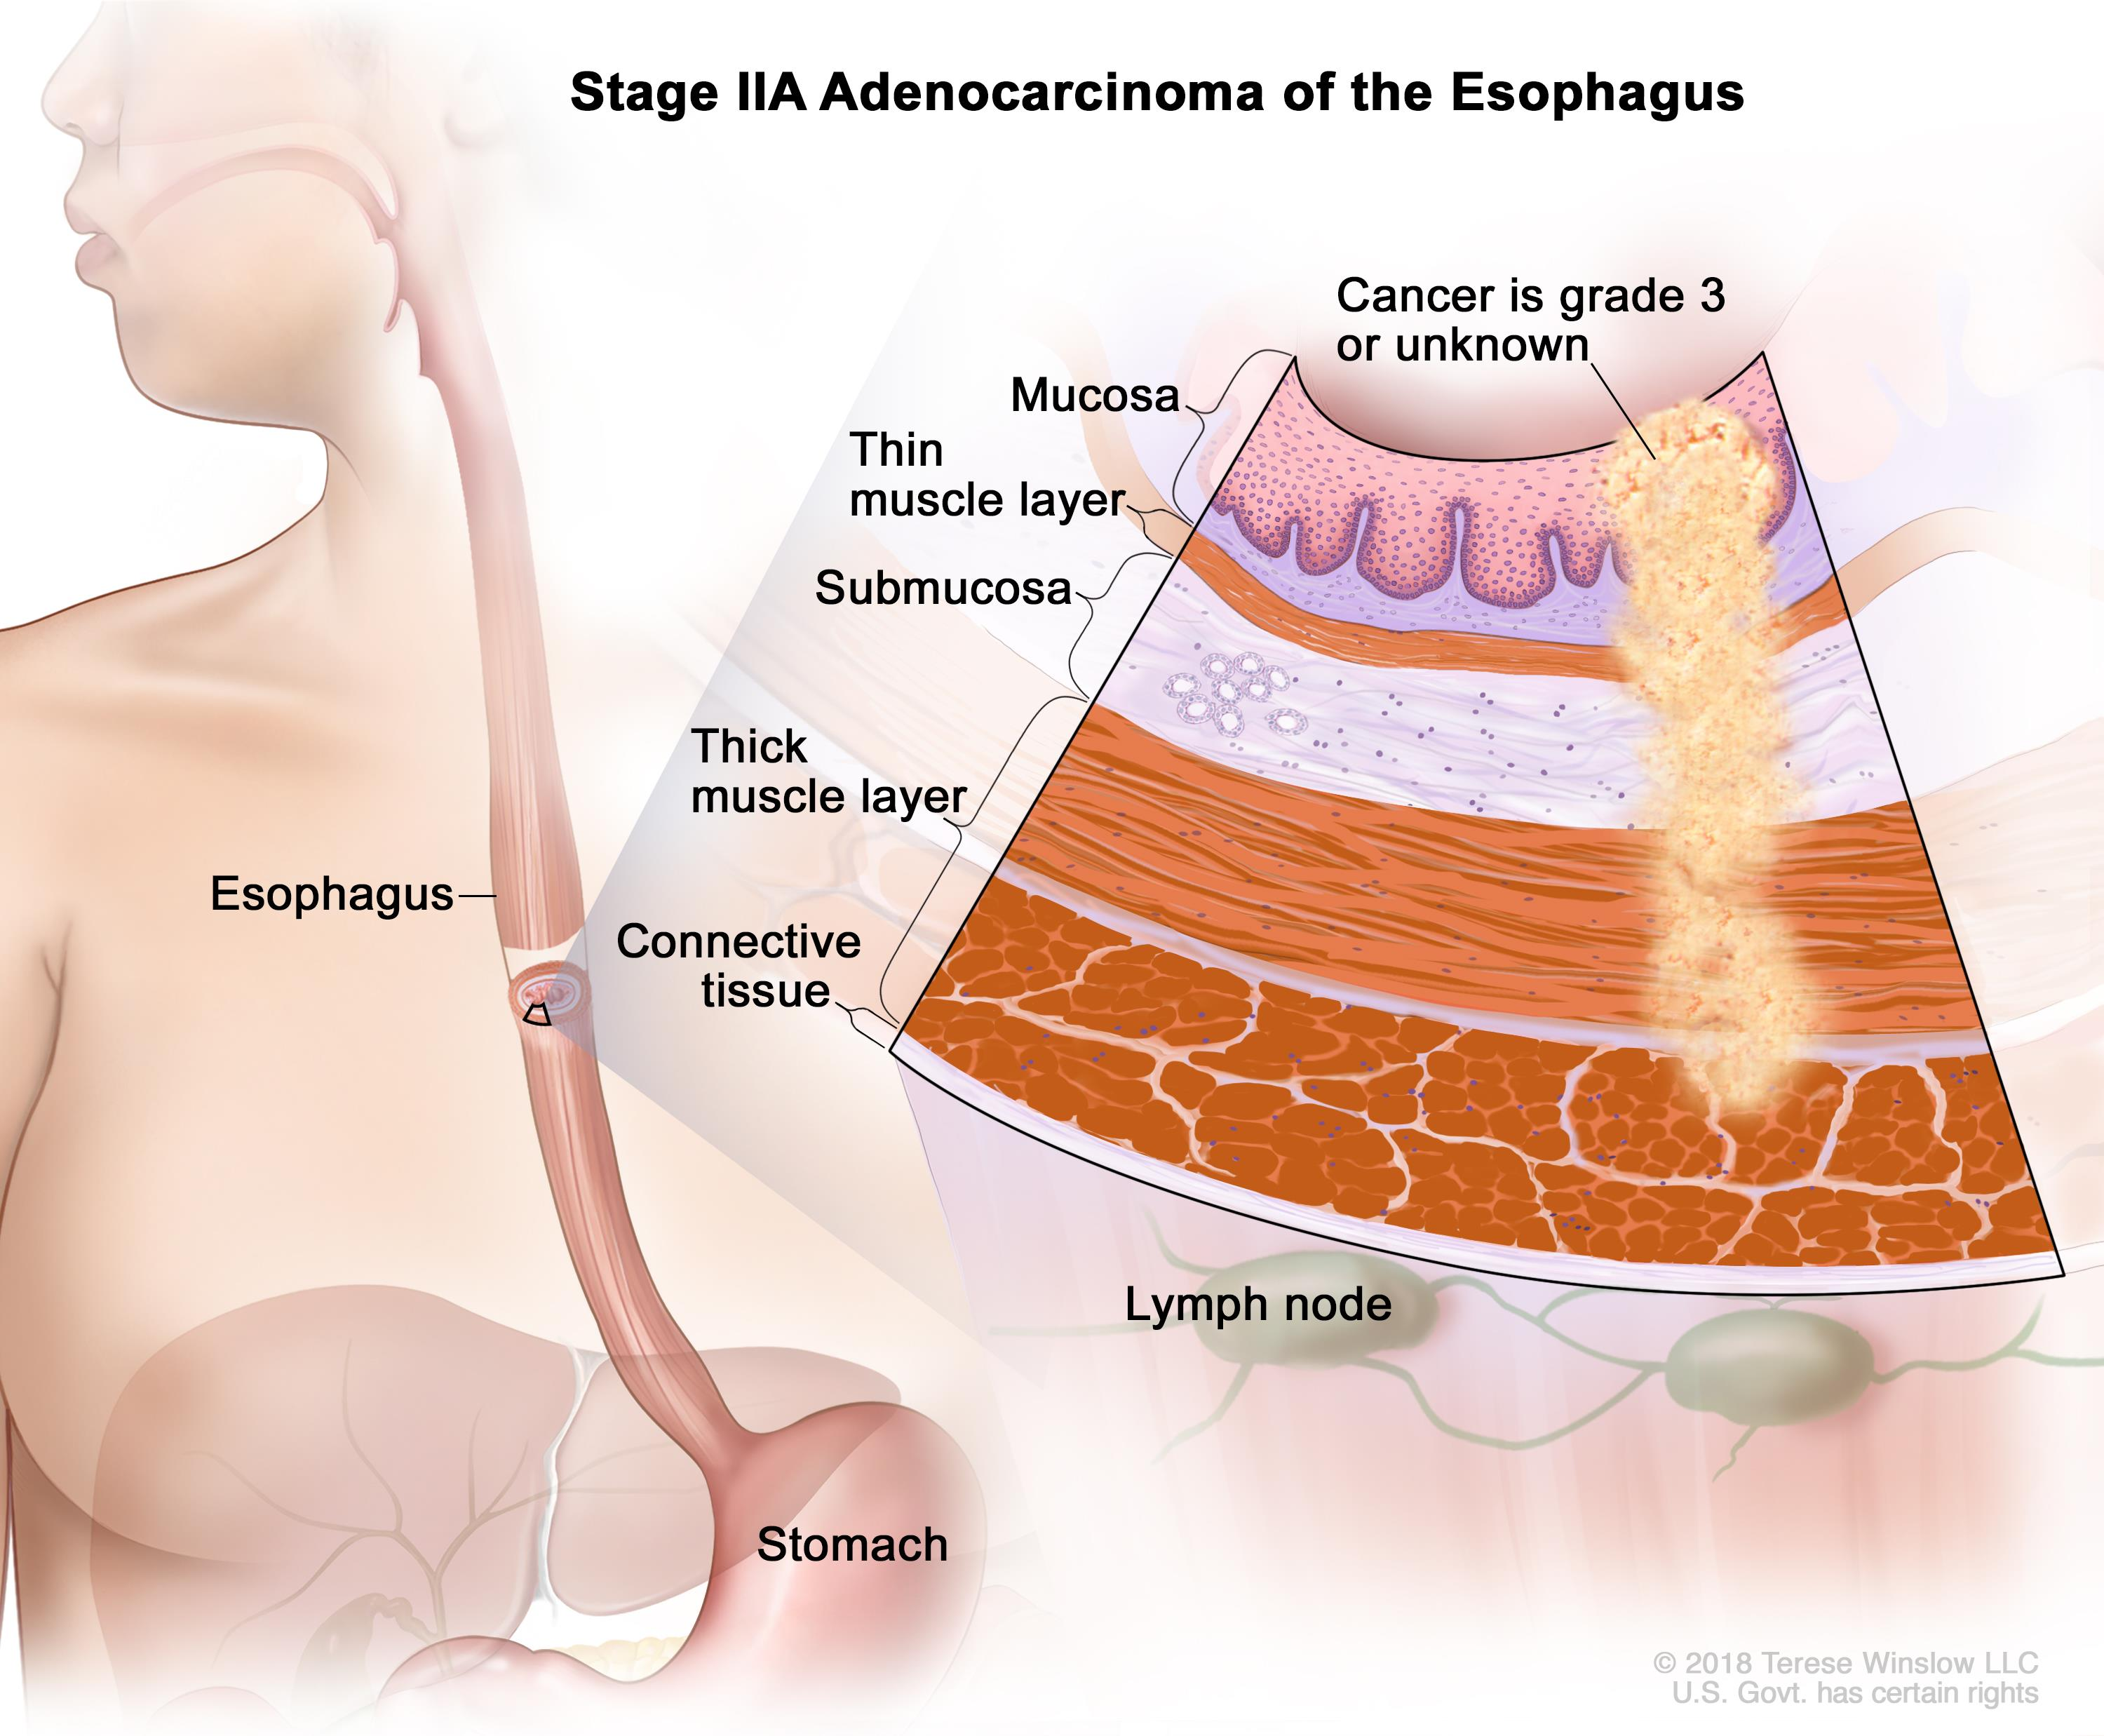 Oesophageal Cancer: Your Way Forward